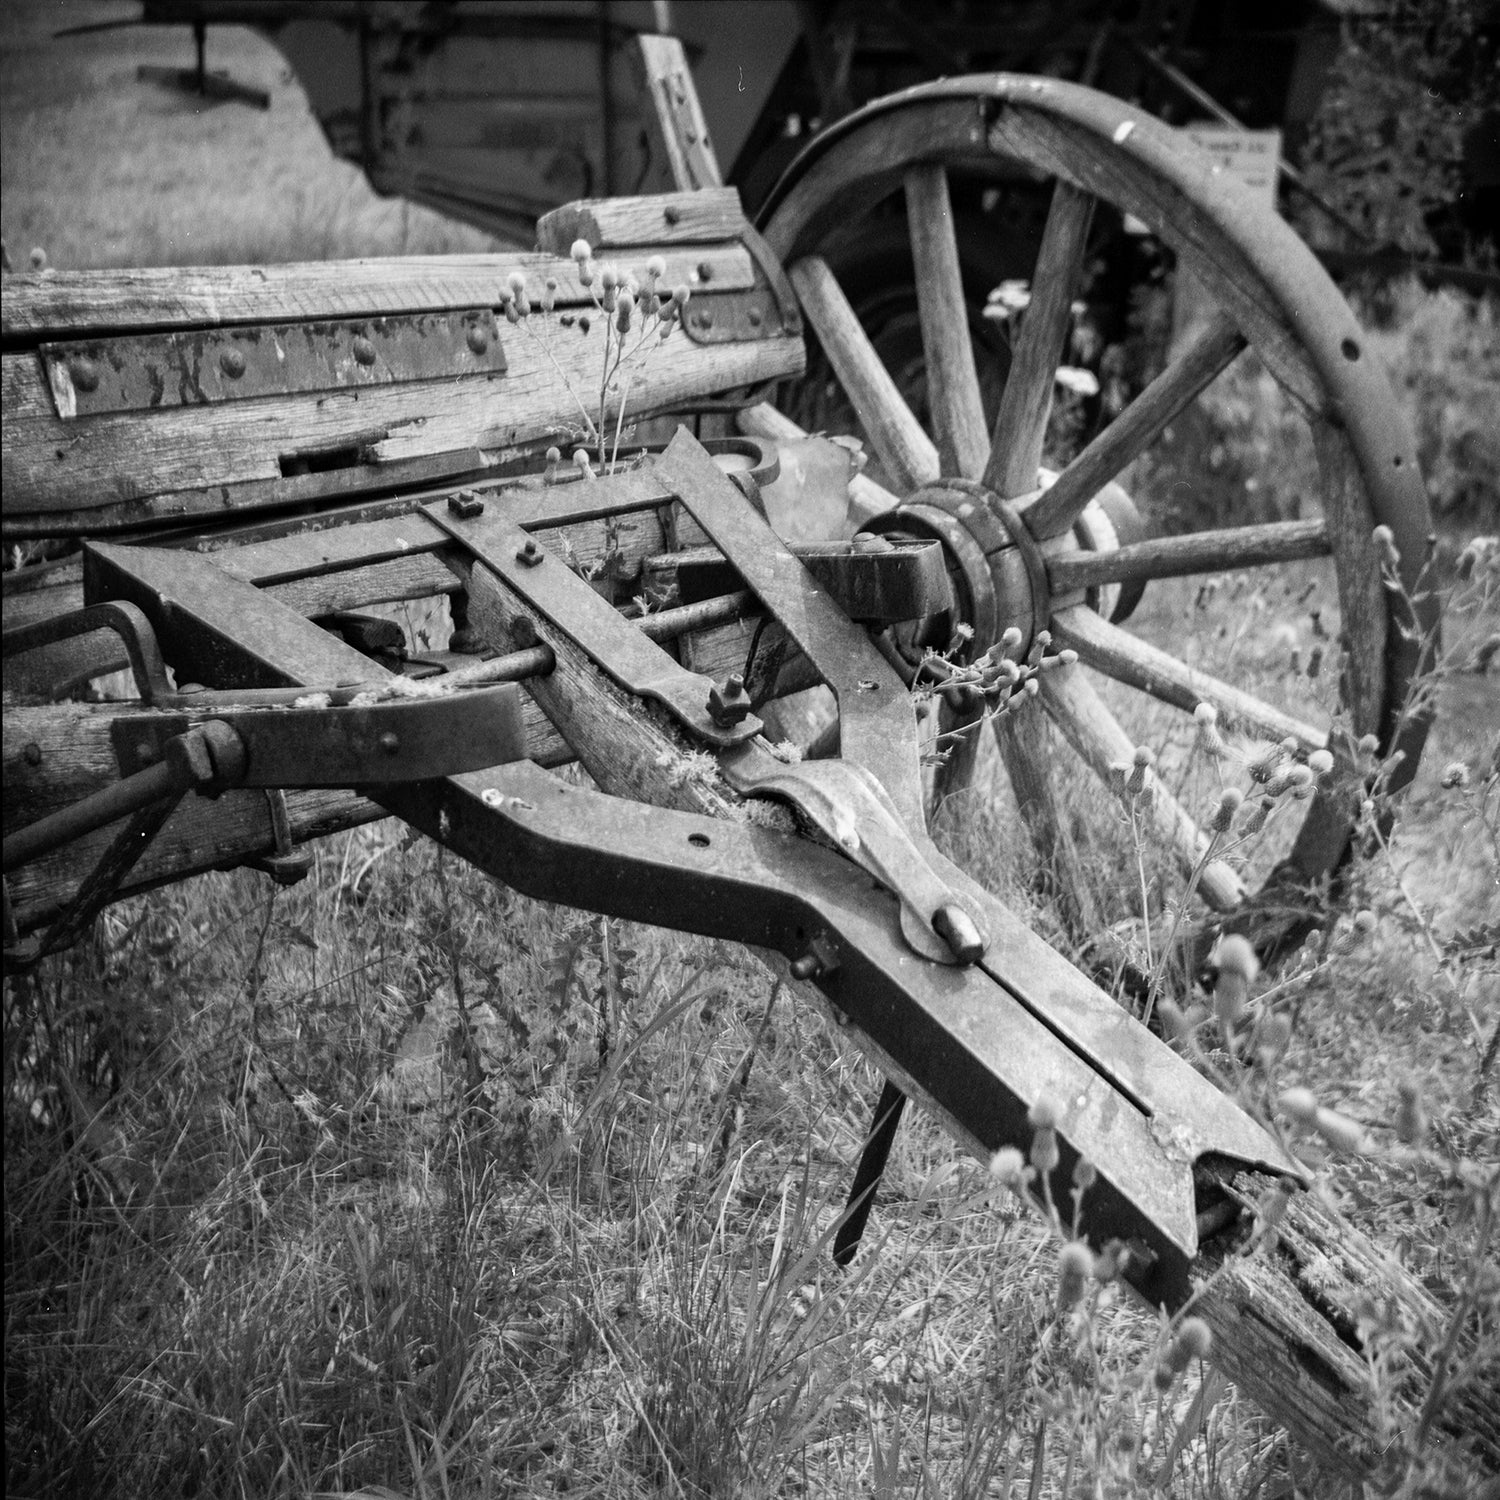 Horse Drawn Farm Equipment